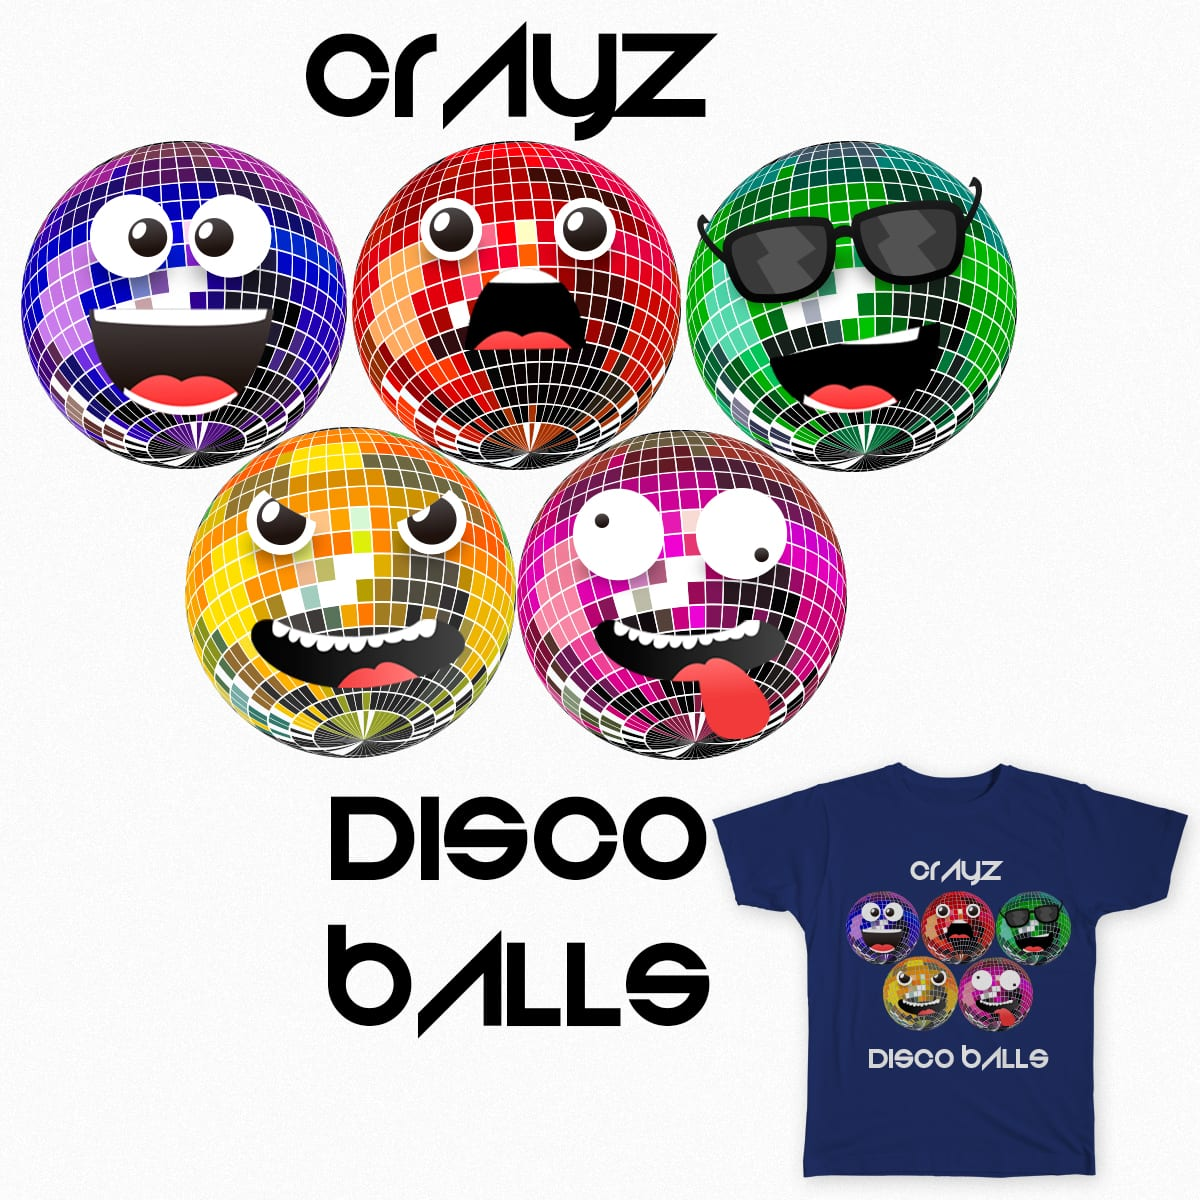 disco balls by osackmx on Threadless